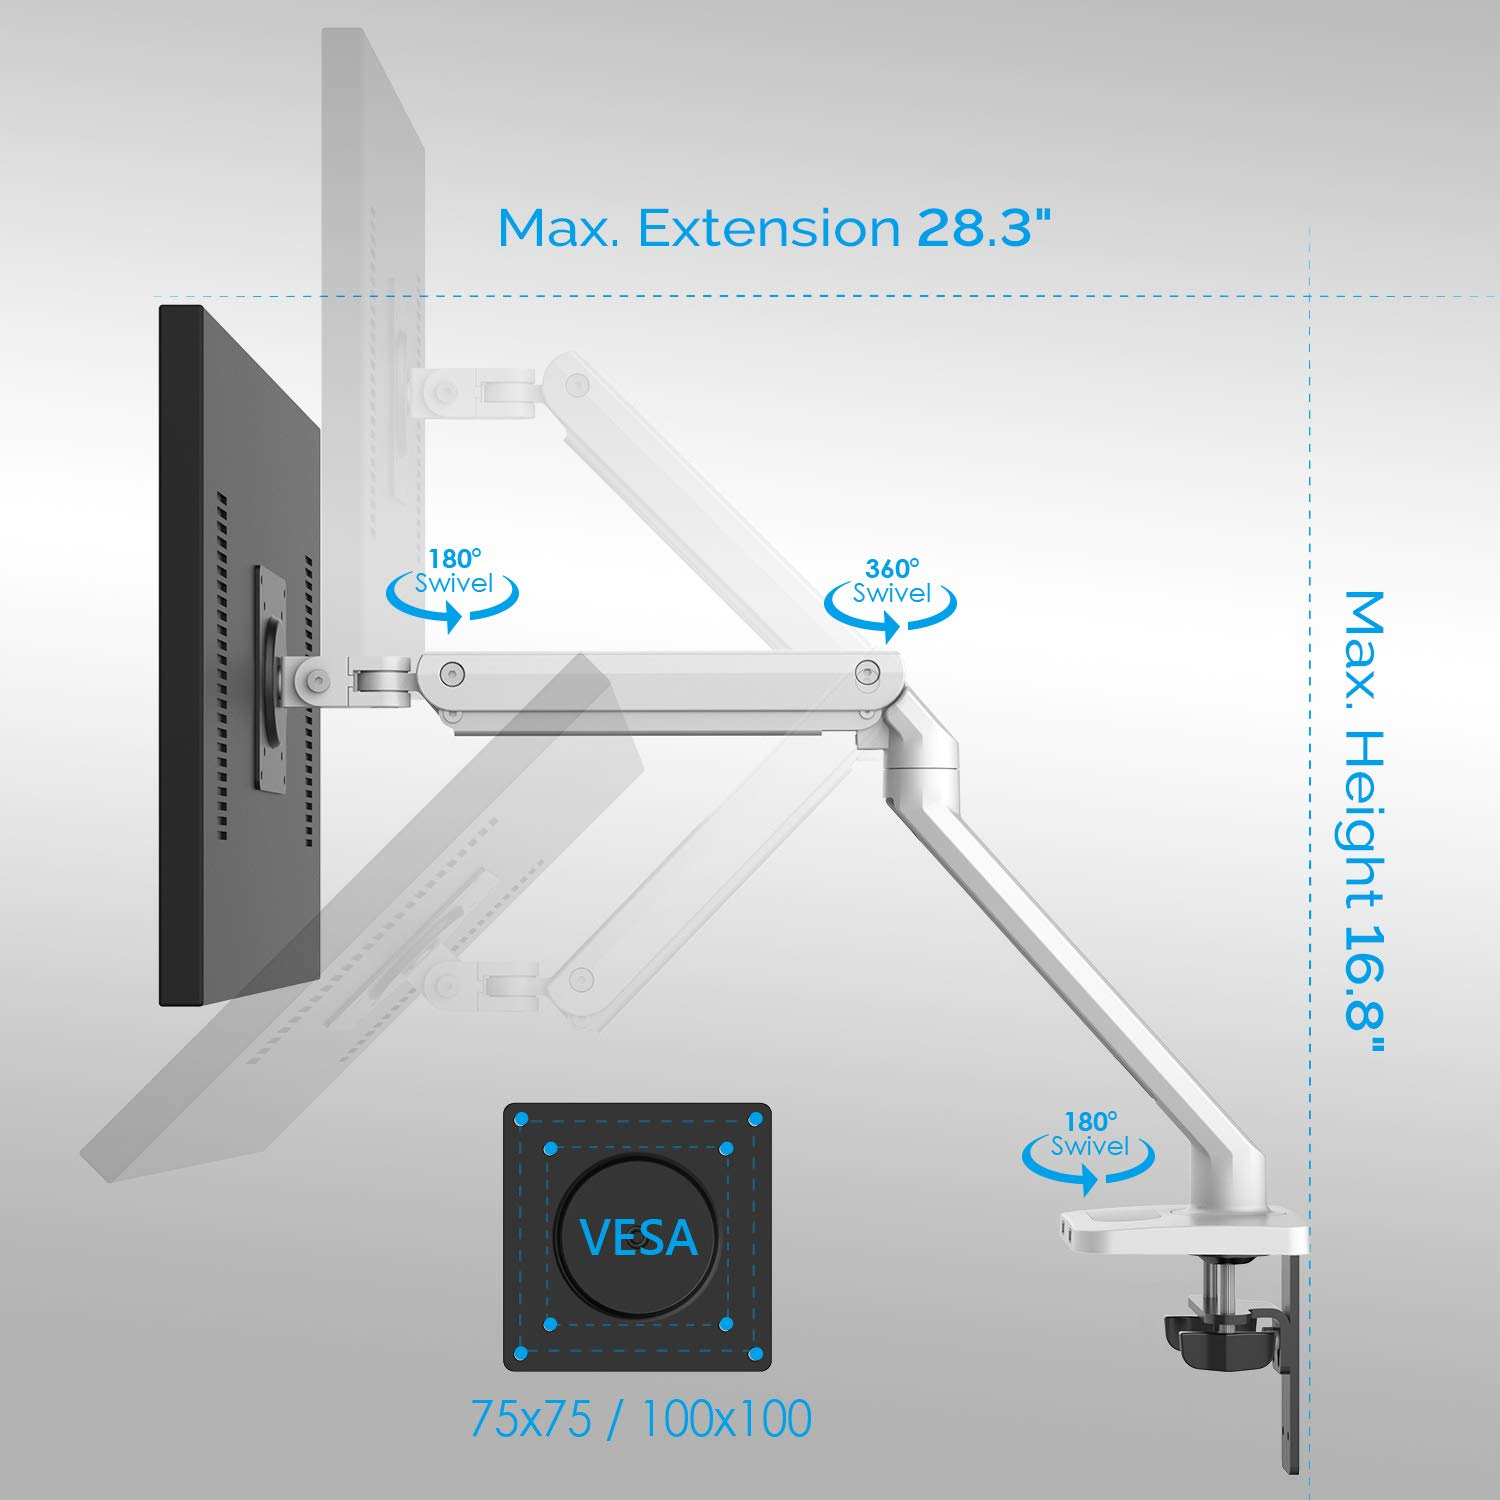 Bemorergo Monitor Mount Stand - Adjustable Single Arm Desk Vesa Mount, Gas Spring Single Monitor Mount, with 2-in-1 Heavy Duty Base, Fits 17 to 32 inch LCD Computer Monitors up to 21lbs, Aluminum